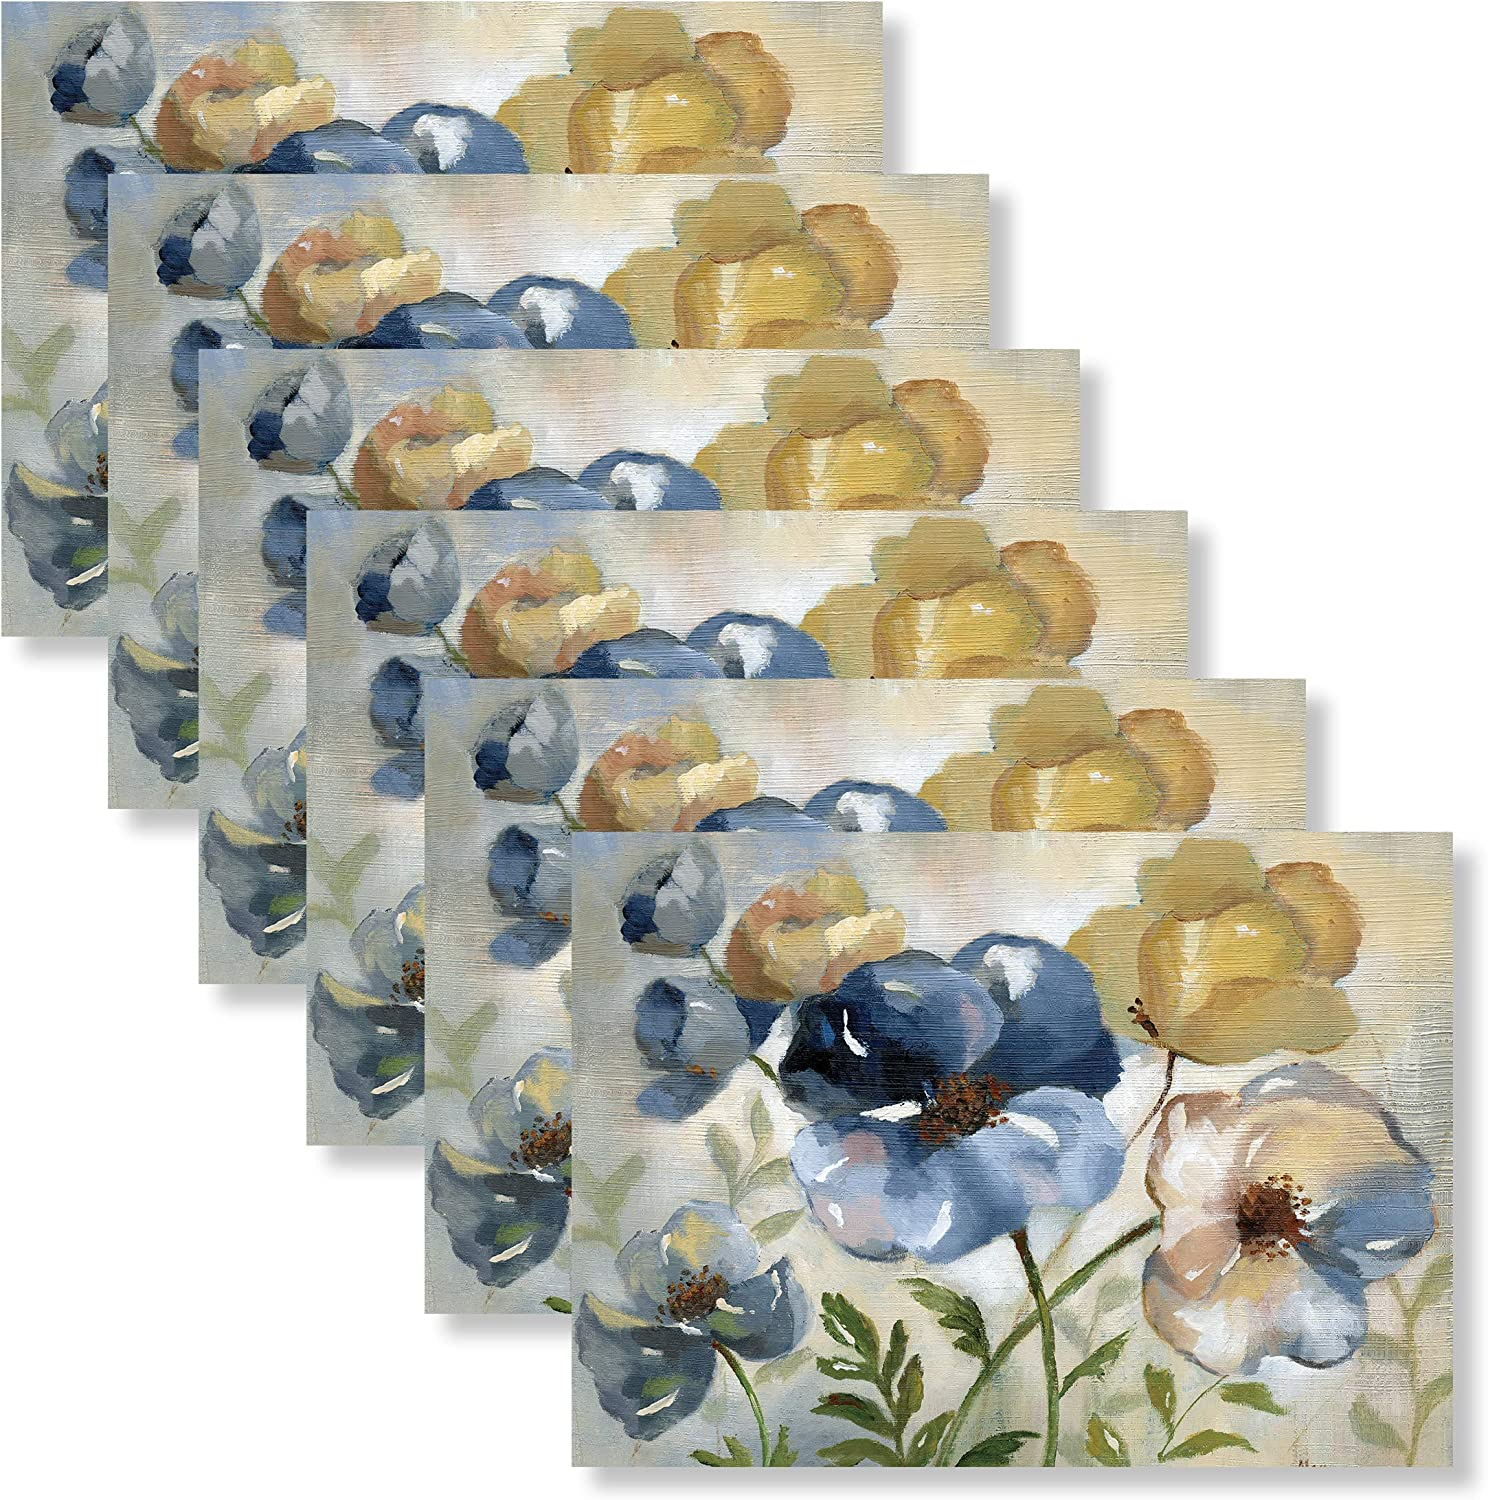 Blissful Living Set of 6 Placemats, Stain Resistant - Decorate Your Kitchen Table with Our Beautiful Rectangle pad placemat (Blue Floral)